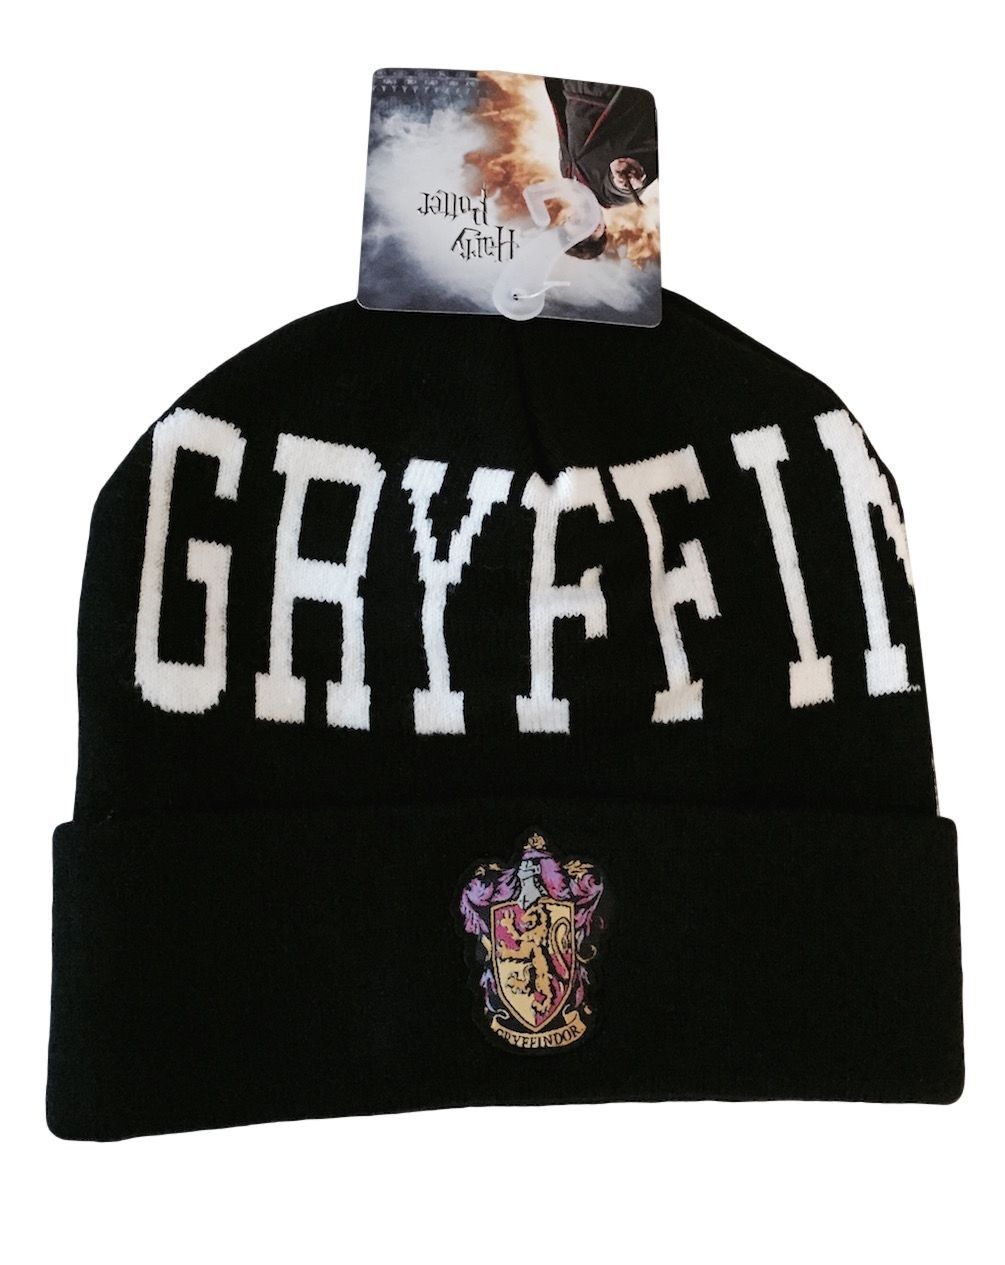 e966551583f Harry Potter Gryffindor Crest and Text Logo Black Cuff Knit Beanie Hat NWT